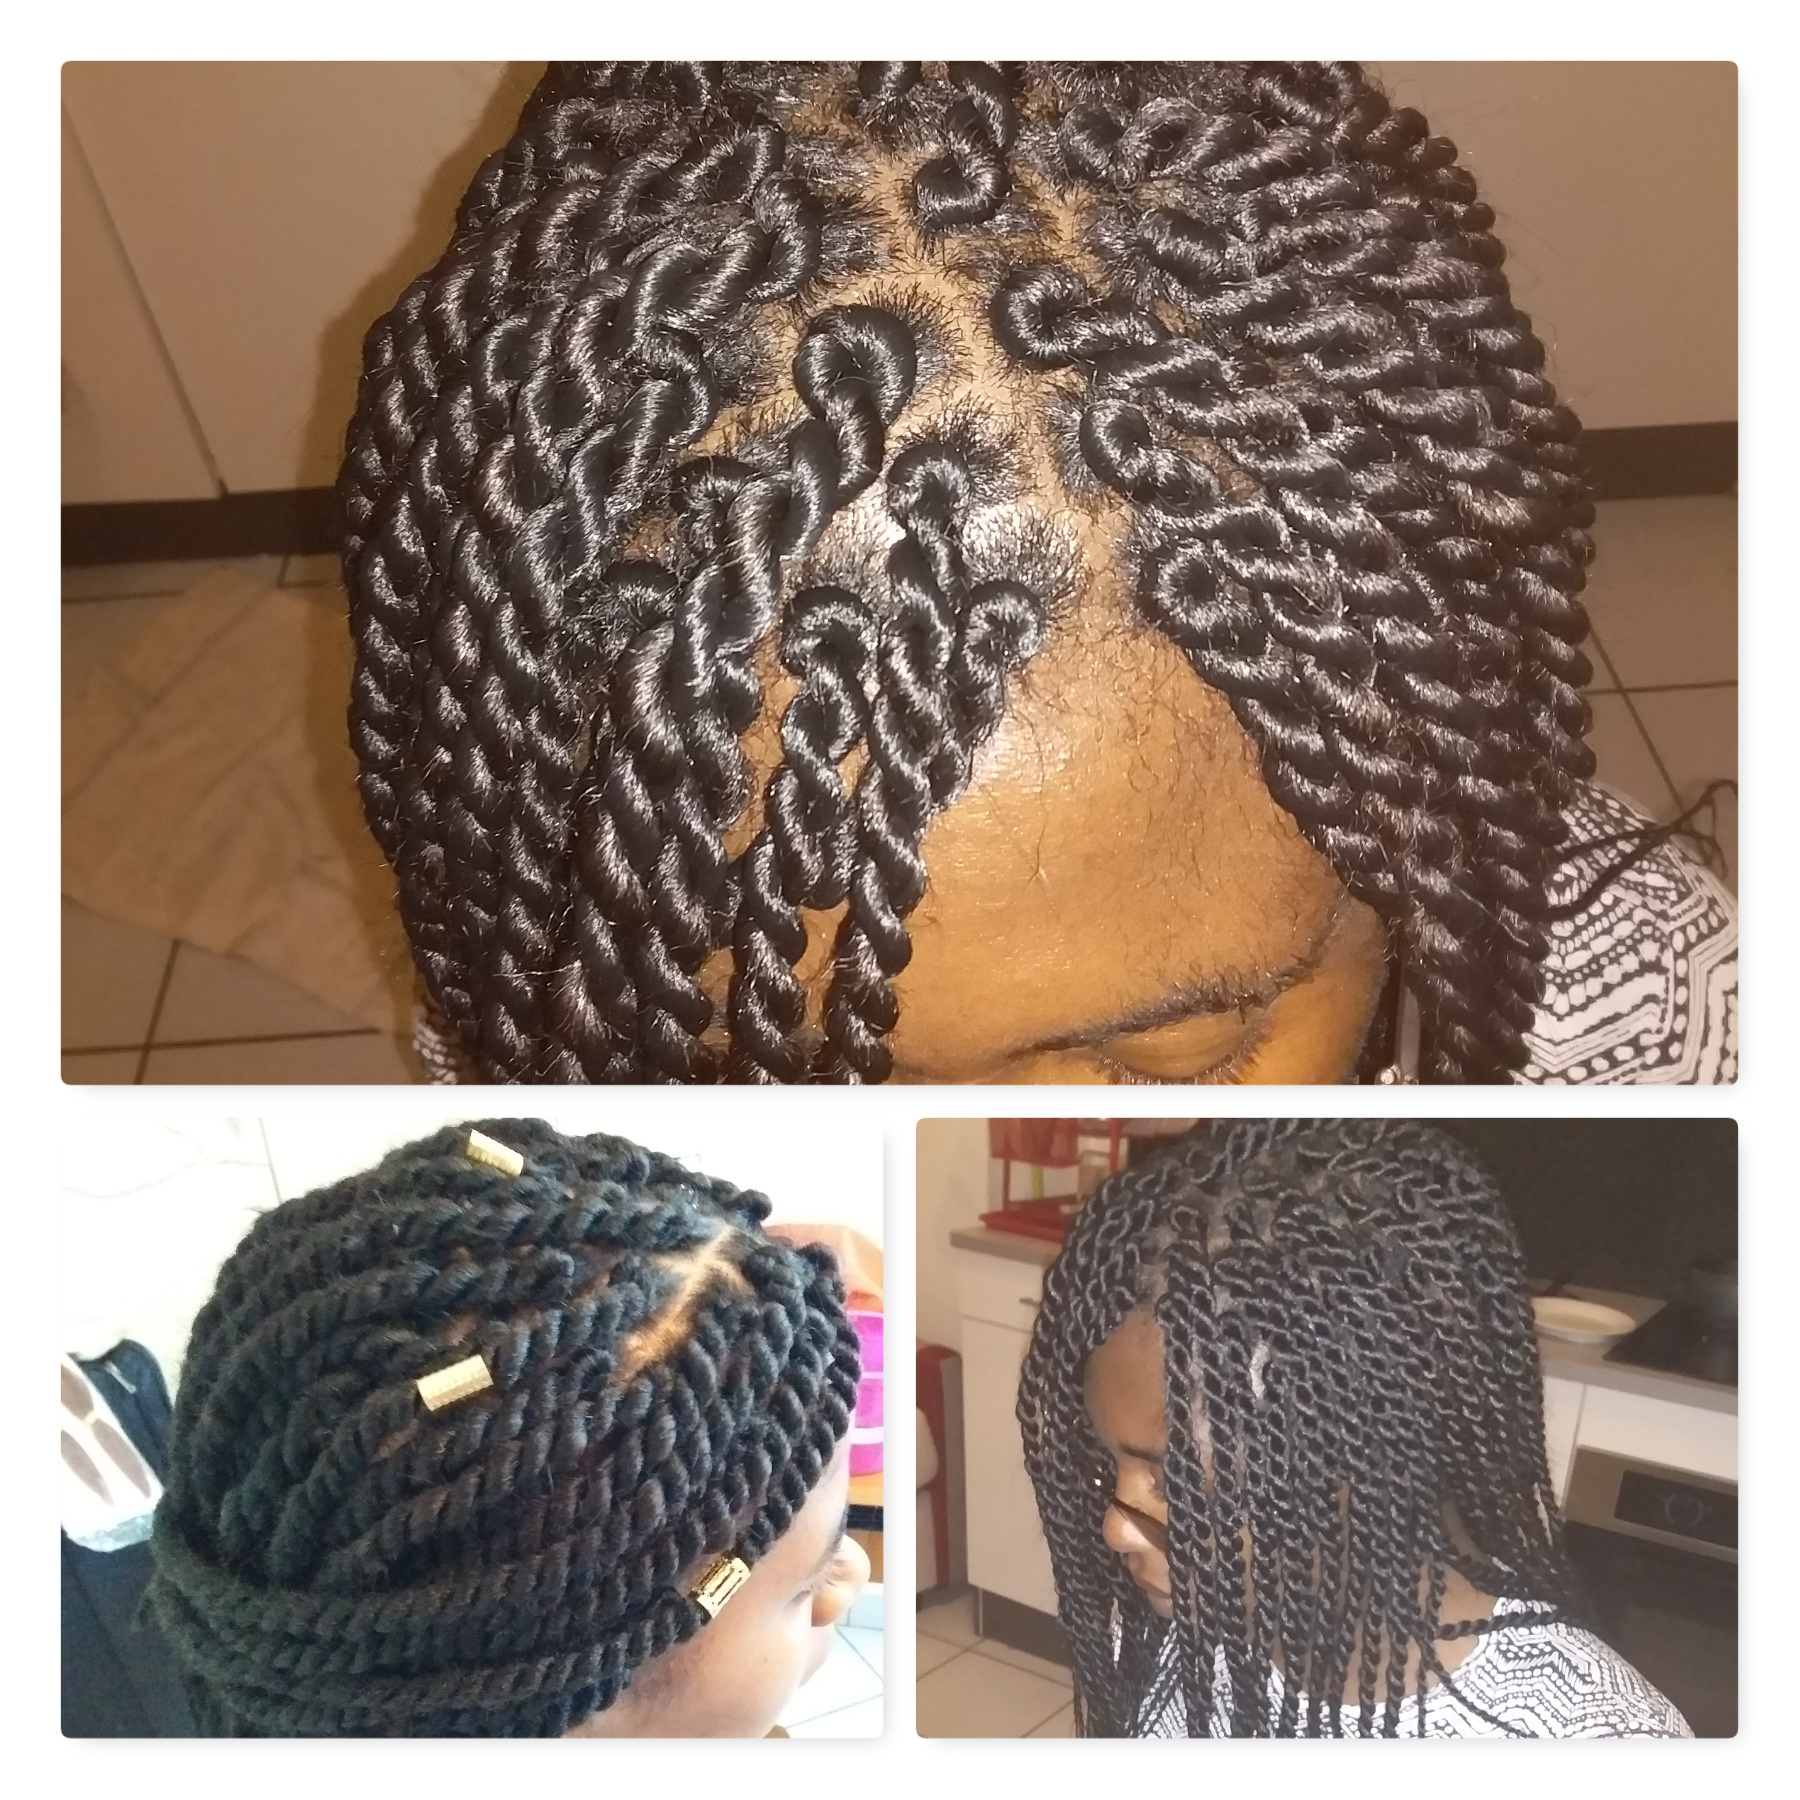 salon de coiffure afro tresse tresses box braids crochet braids vanilles tissages paris 75 77 78 91 92 93 94 95 GZBMZCVZ